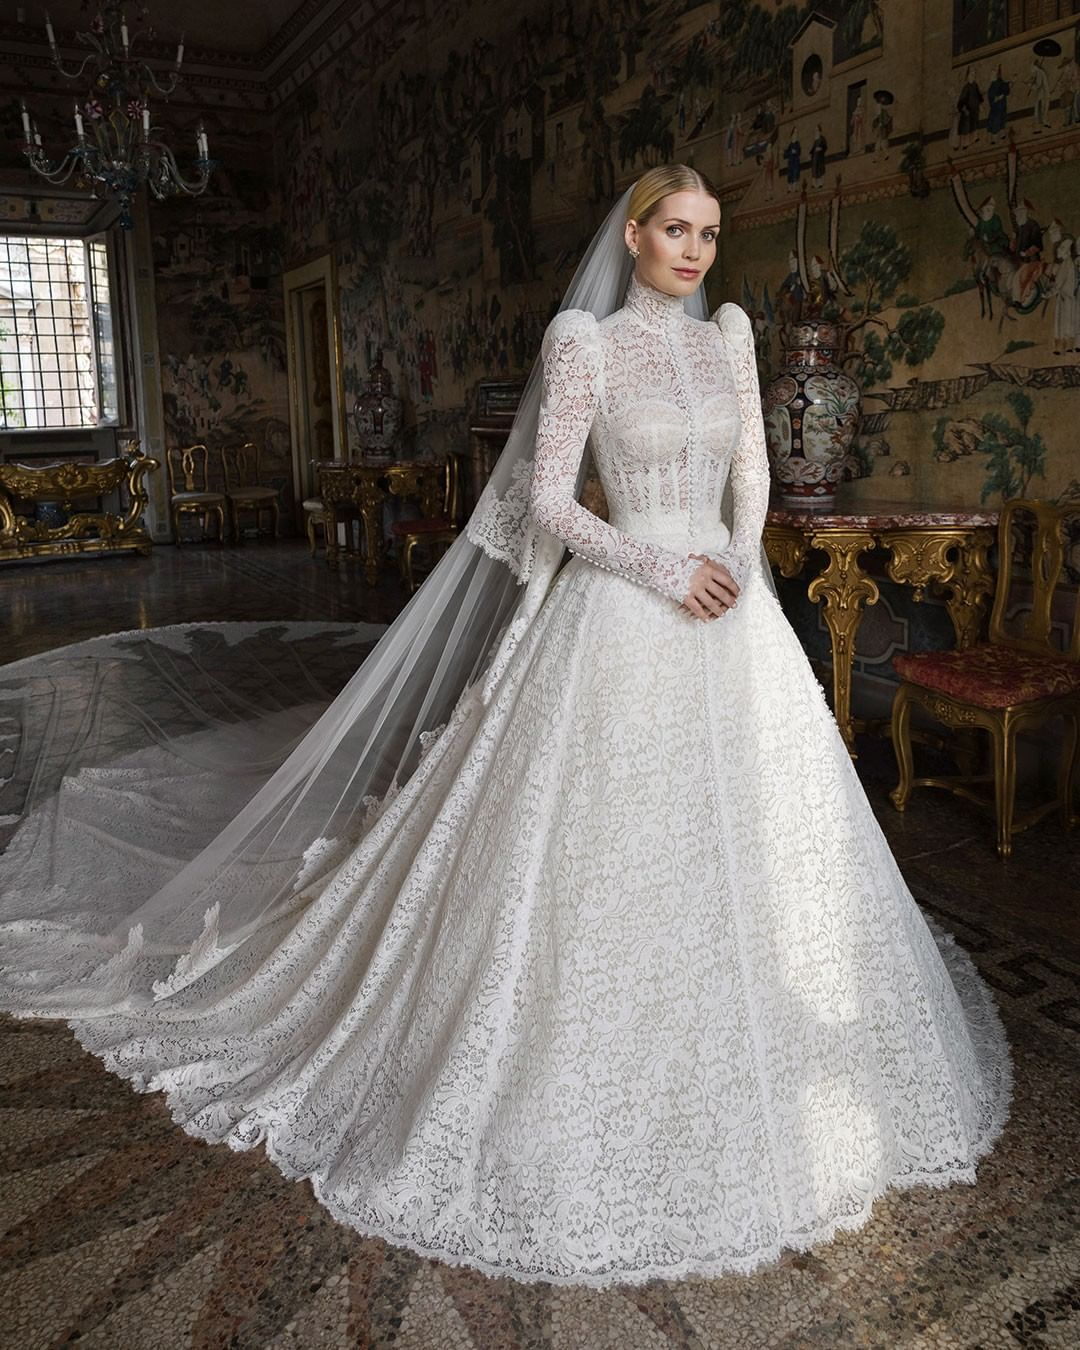 Princess Diana's Niece Just Got Married in a Victorian-Inspired Wedding Dress